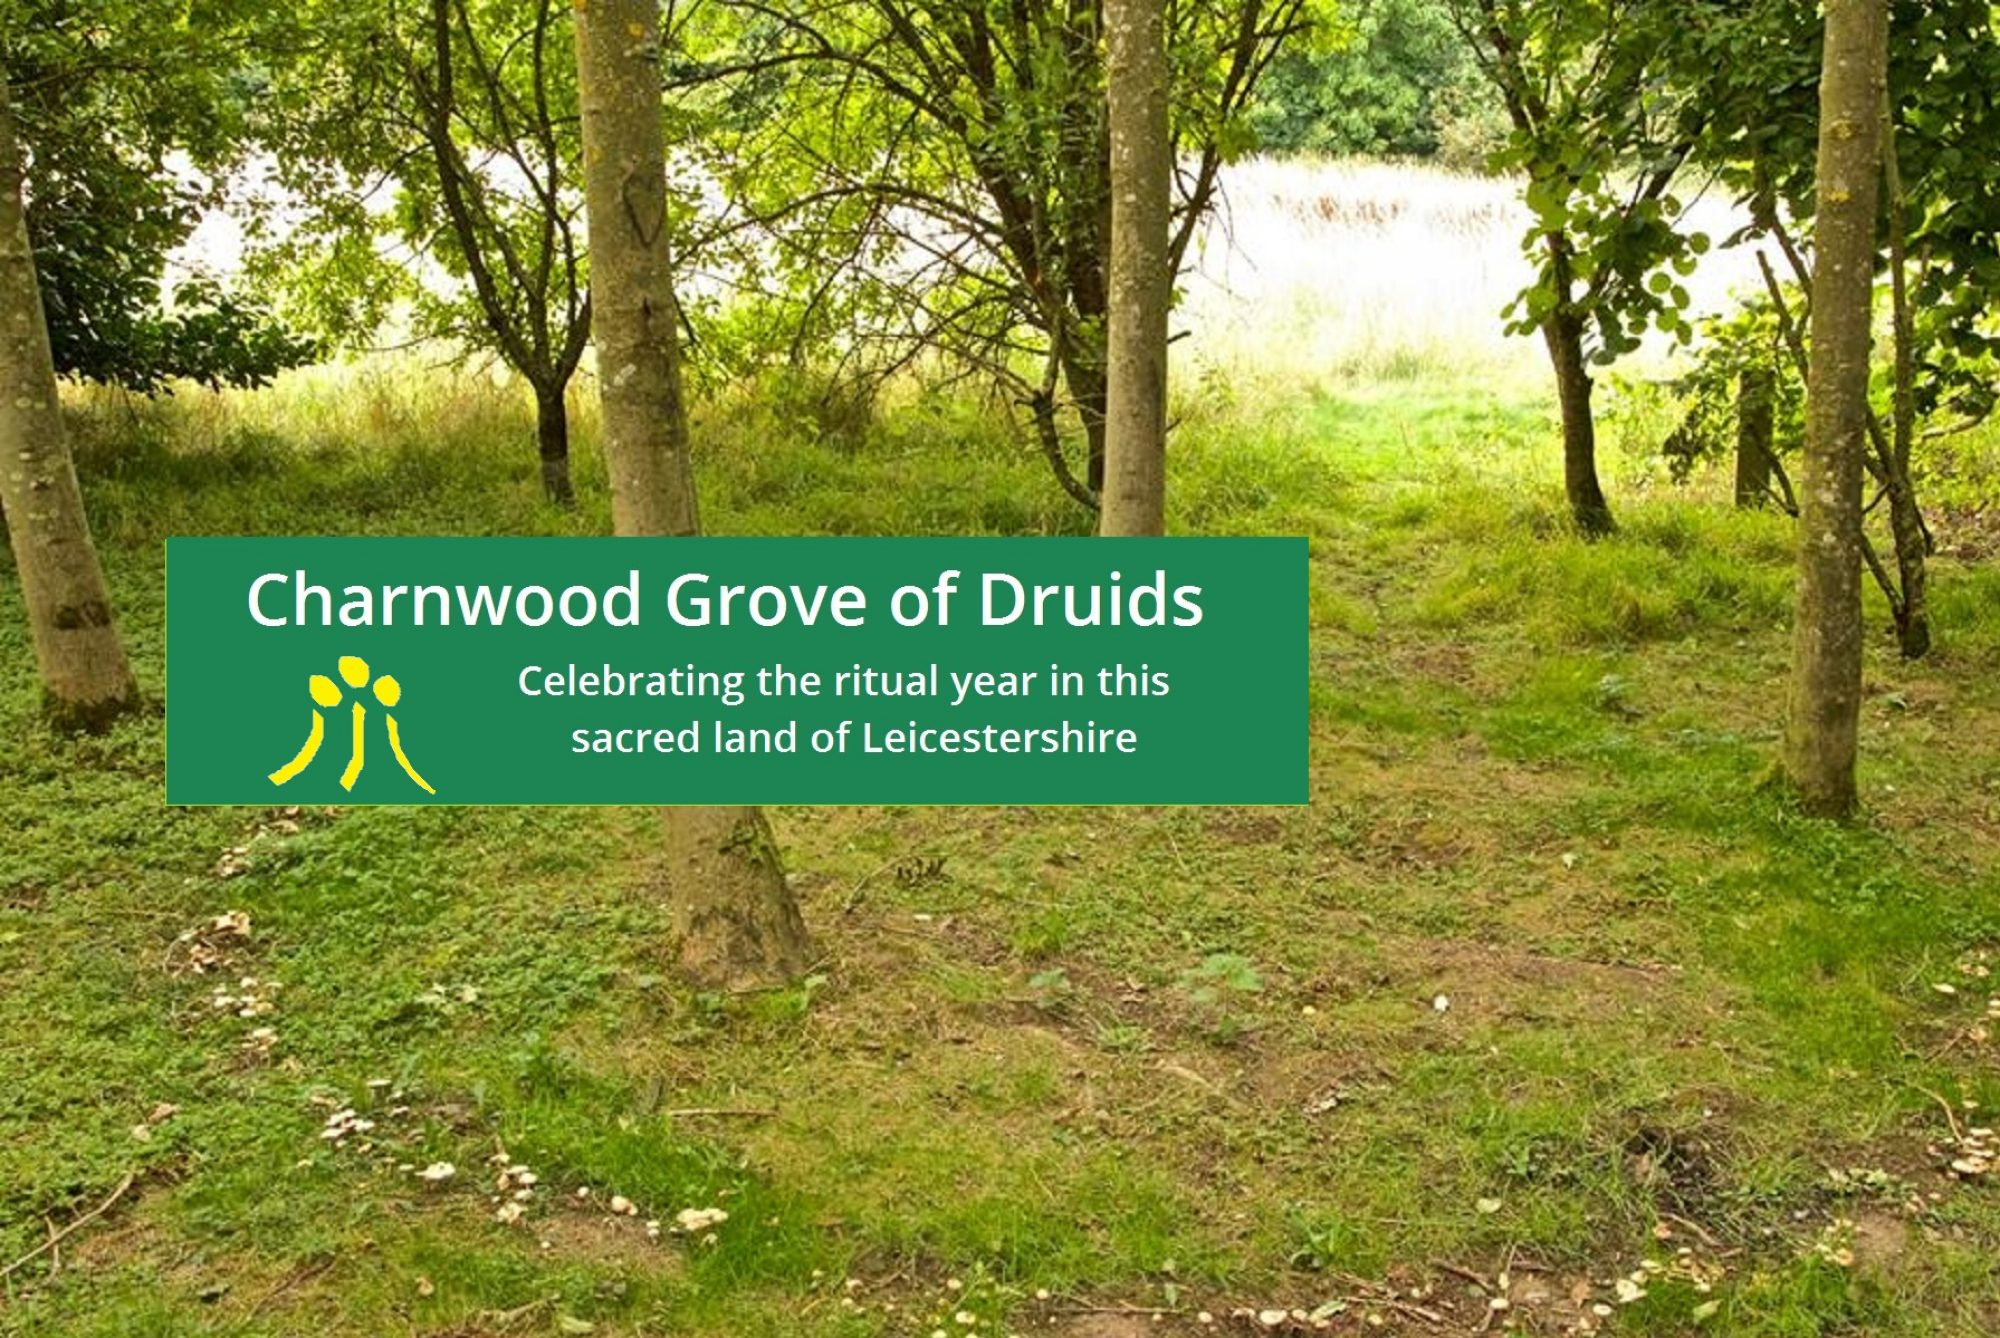 Charnwood Grove of Druids